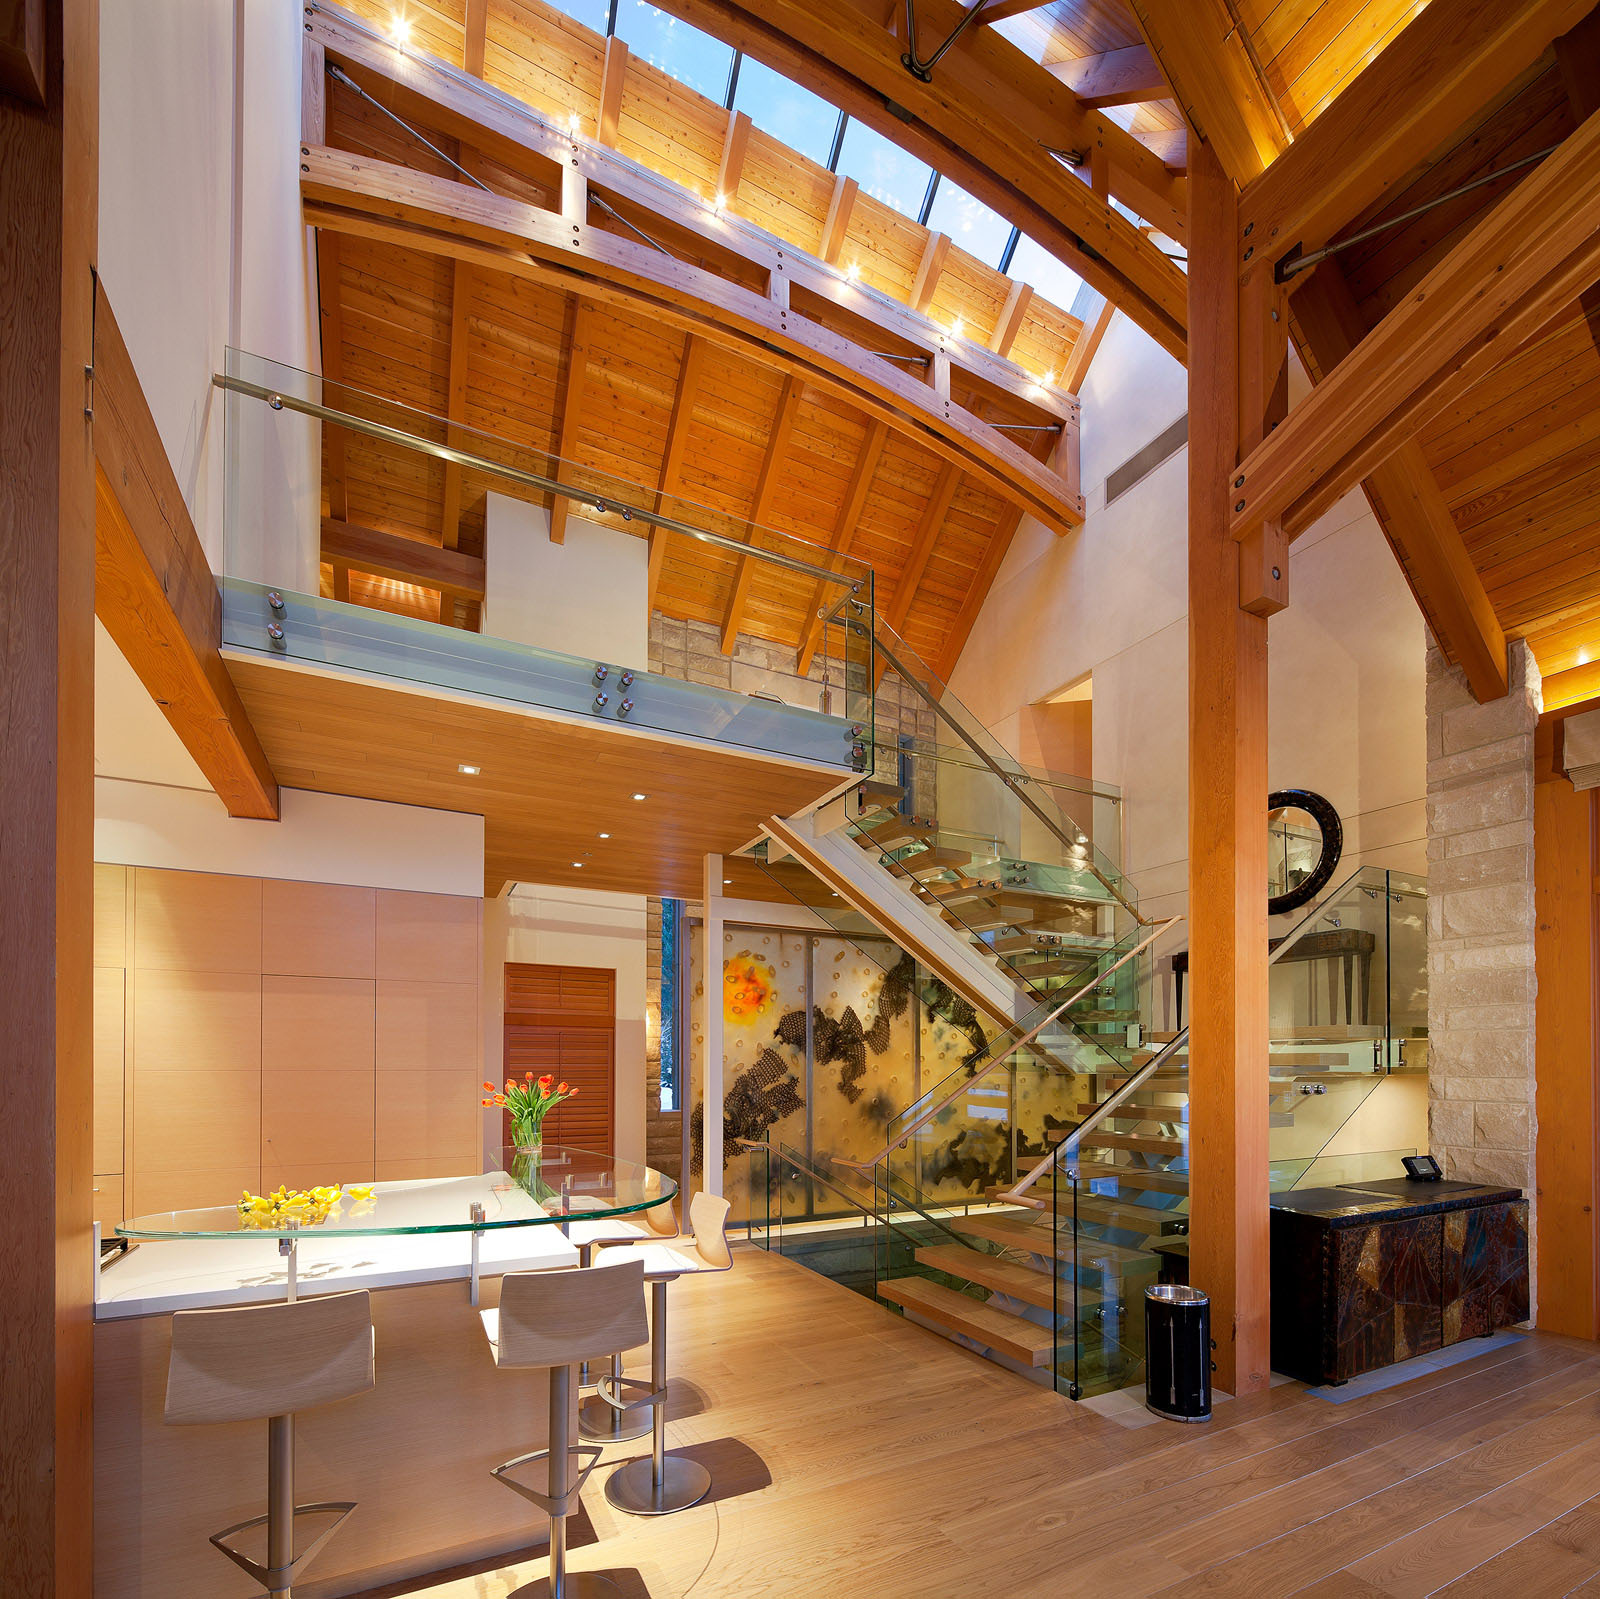 Luxury Timber Frame Mountain Retreat In Whistler | iDesignArch ...